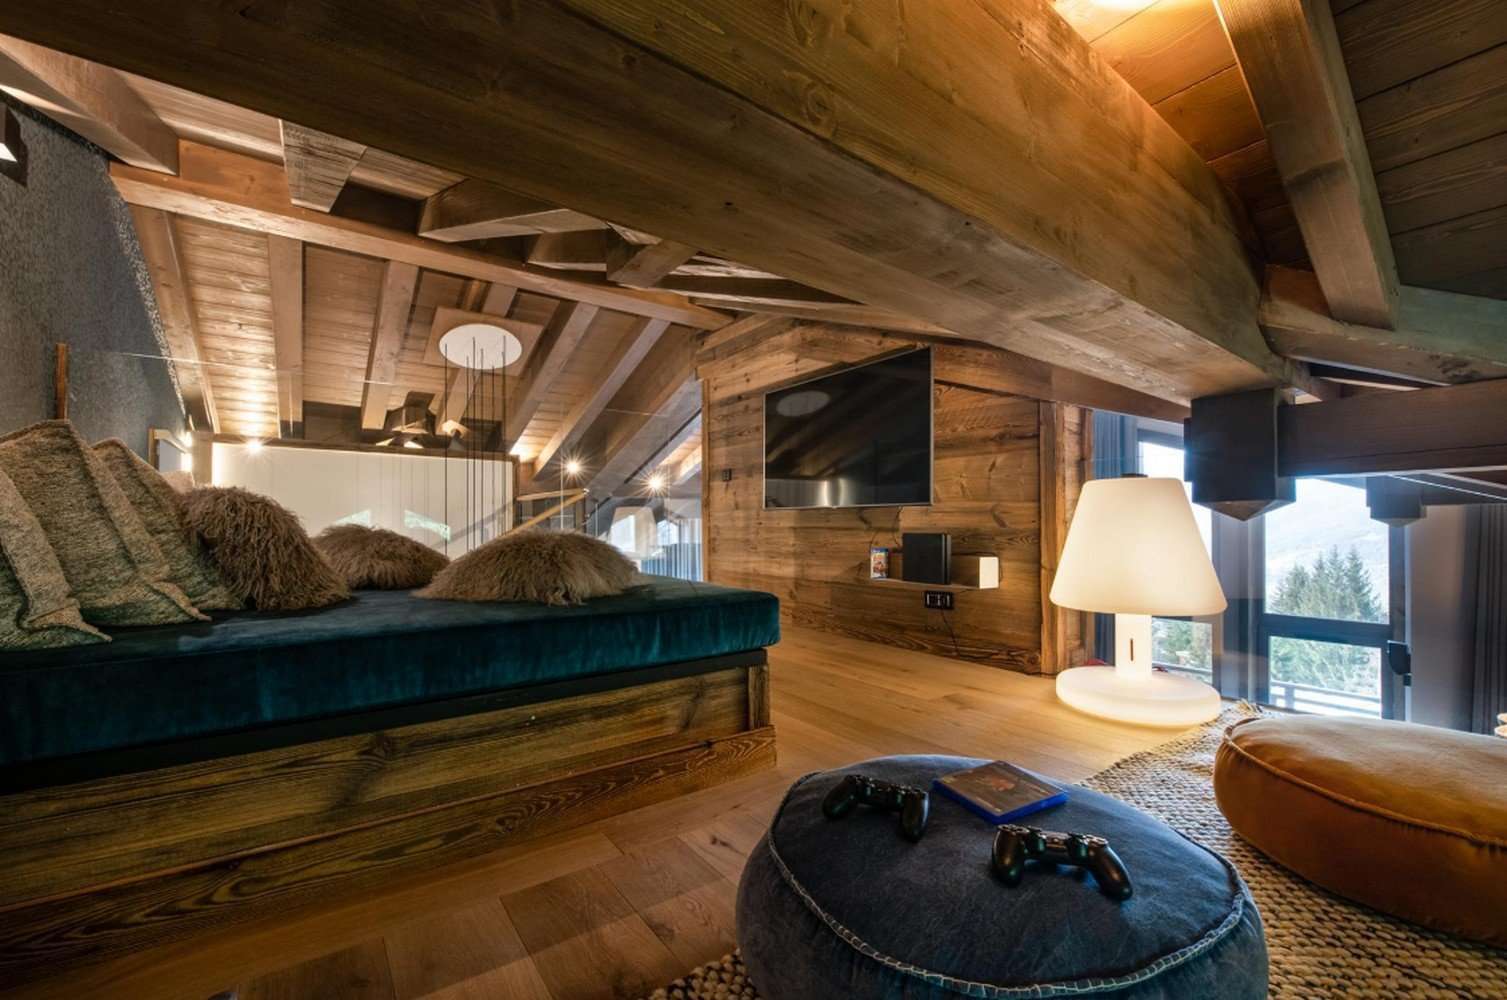 BEAUTIFUL CHALET IN COURCHEVEL